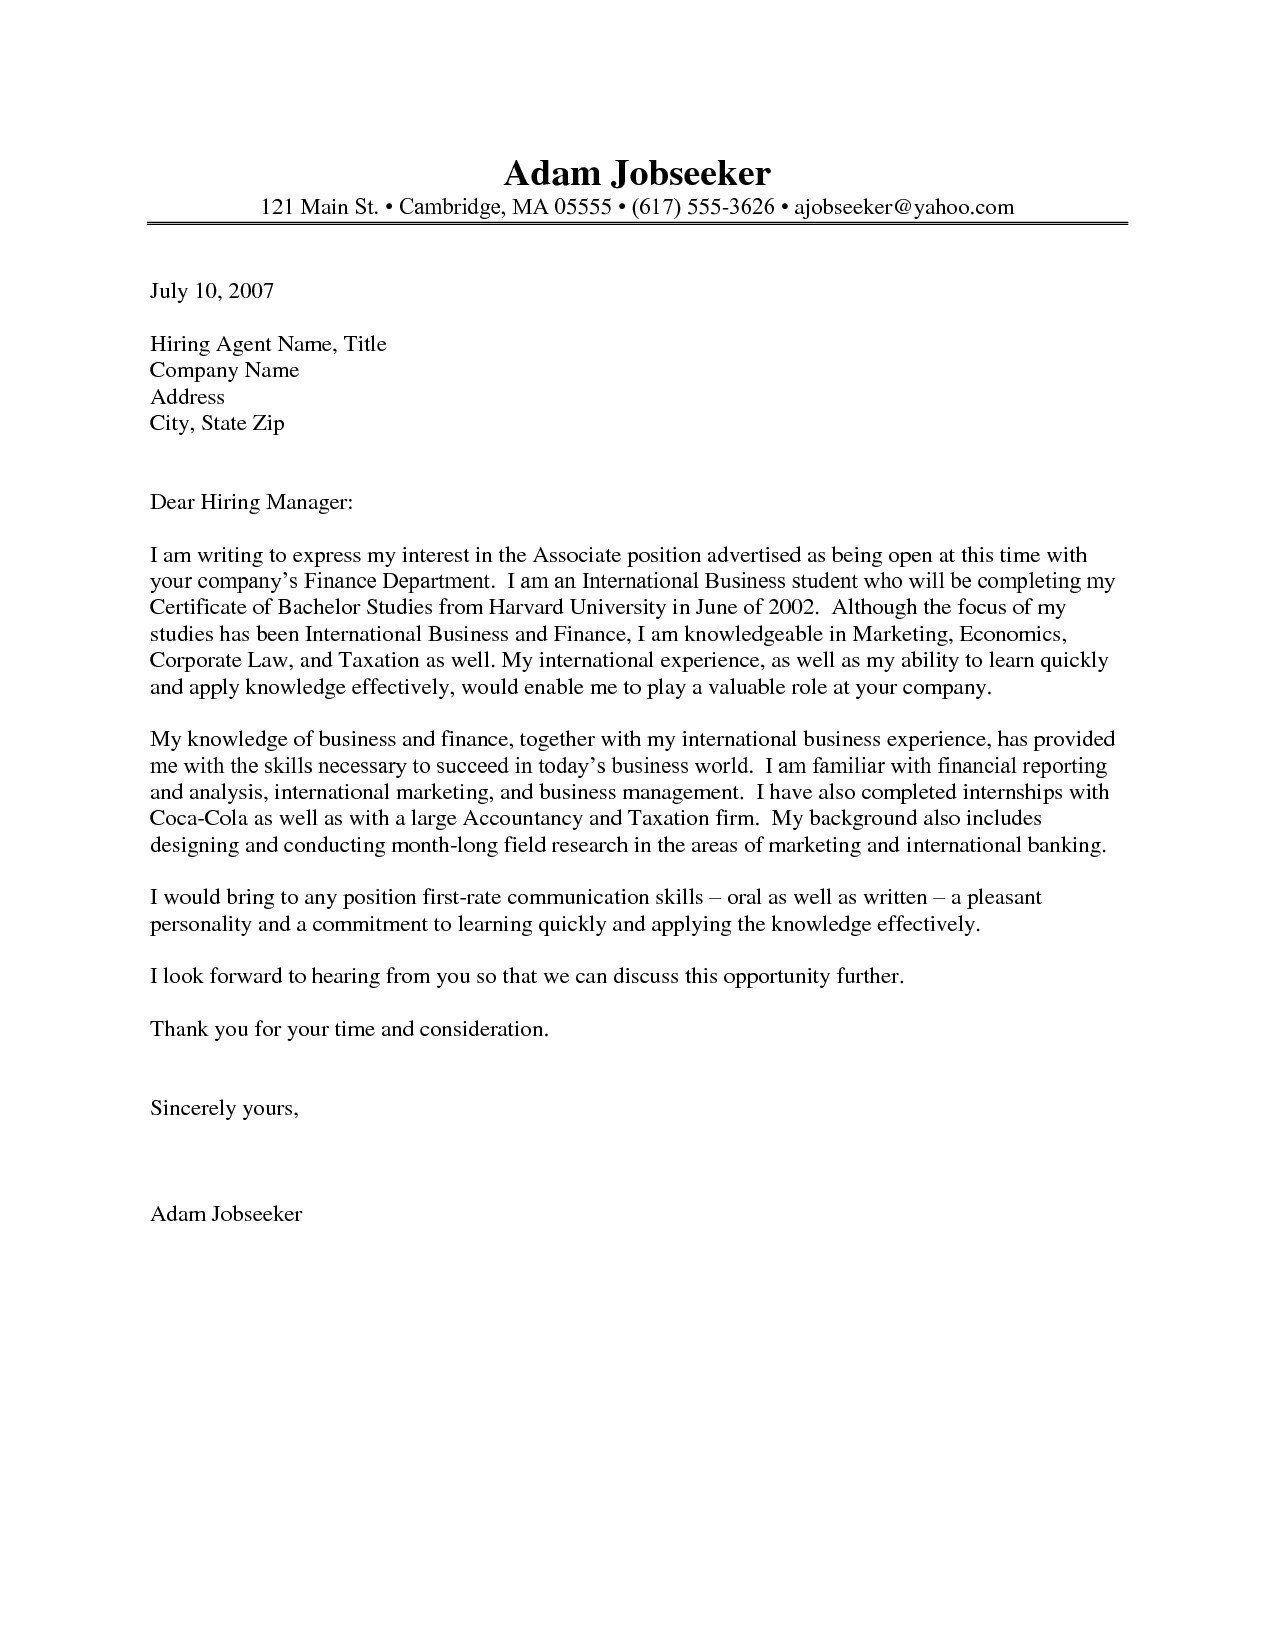 Esa Template Letter - Awesome Letter to Cancel Insurance Coverage